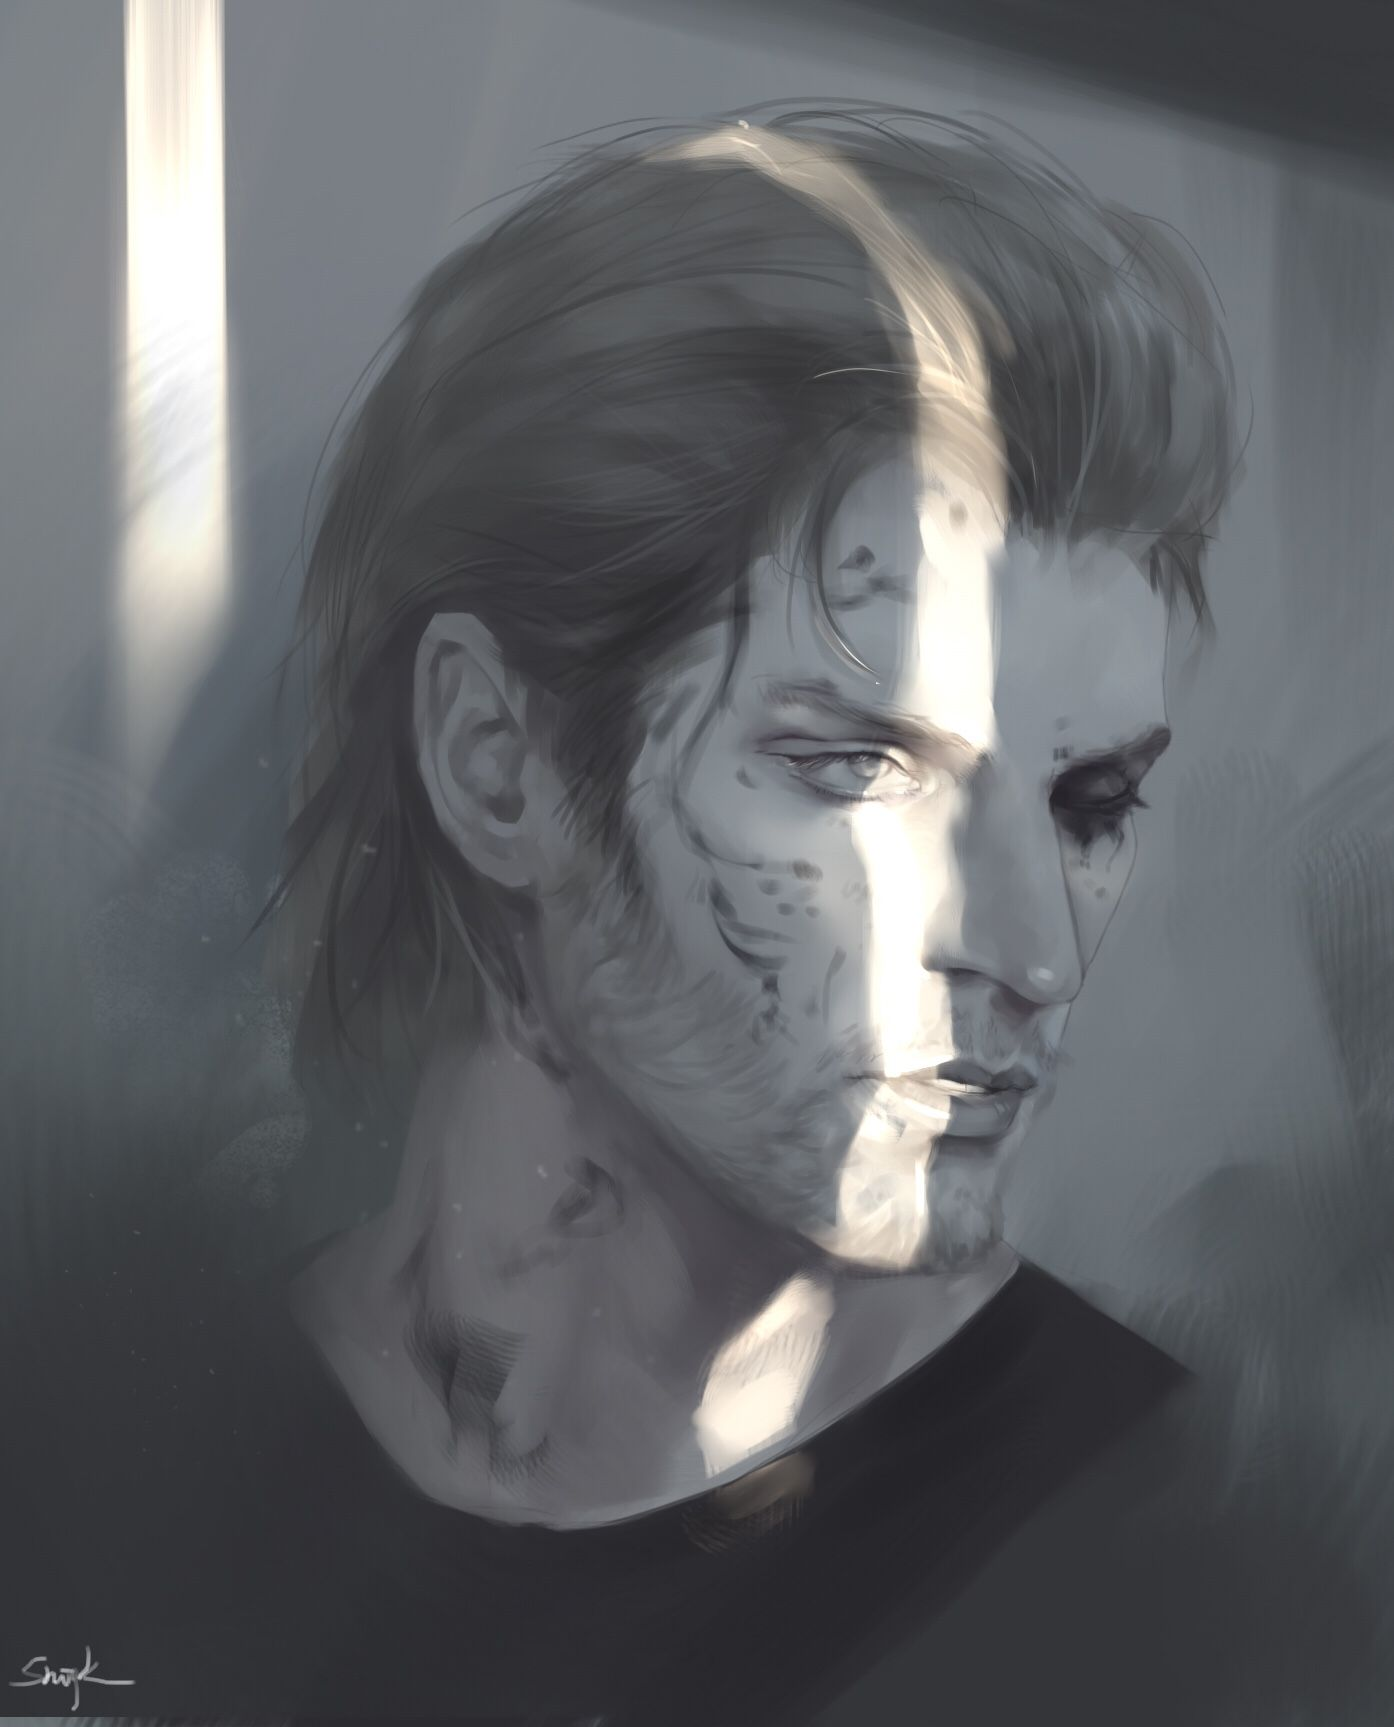 Mgsv Kazuhira Miller By Shuiqk Metal Gear Metal Gear Rising Gear Art Willing to work with anybody whether you're rapper/producer etc. mgsv kazuhira miller by shuiqk metal